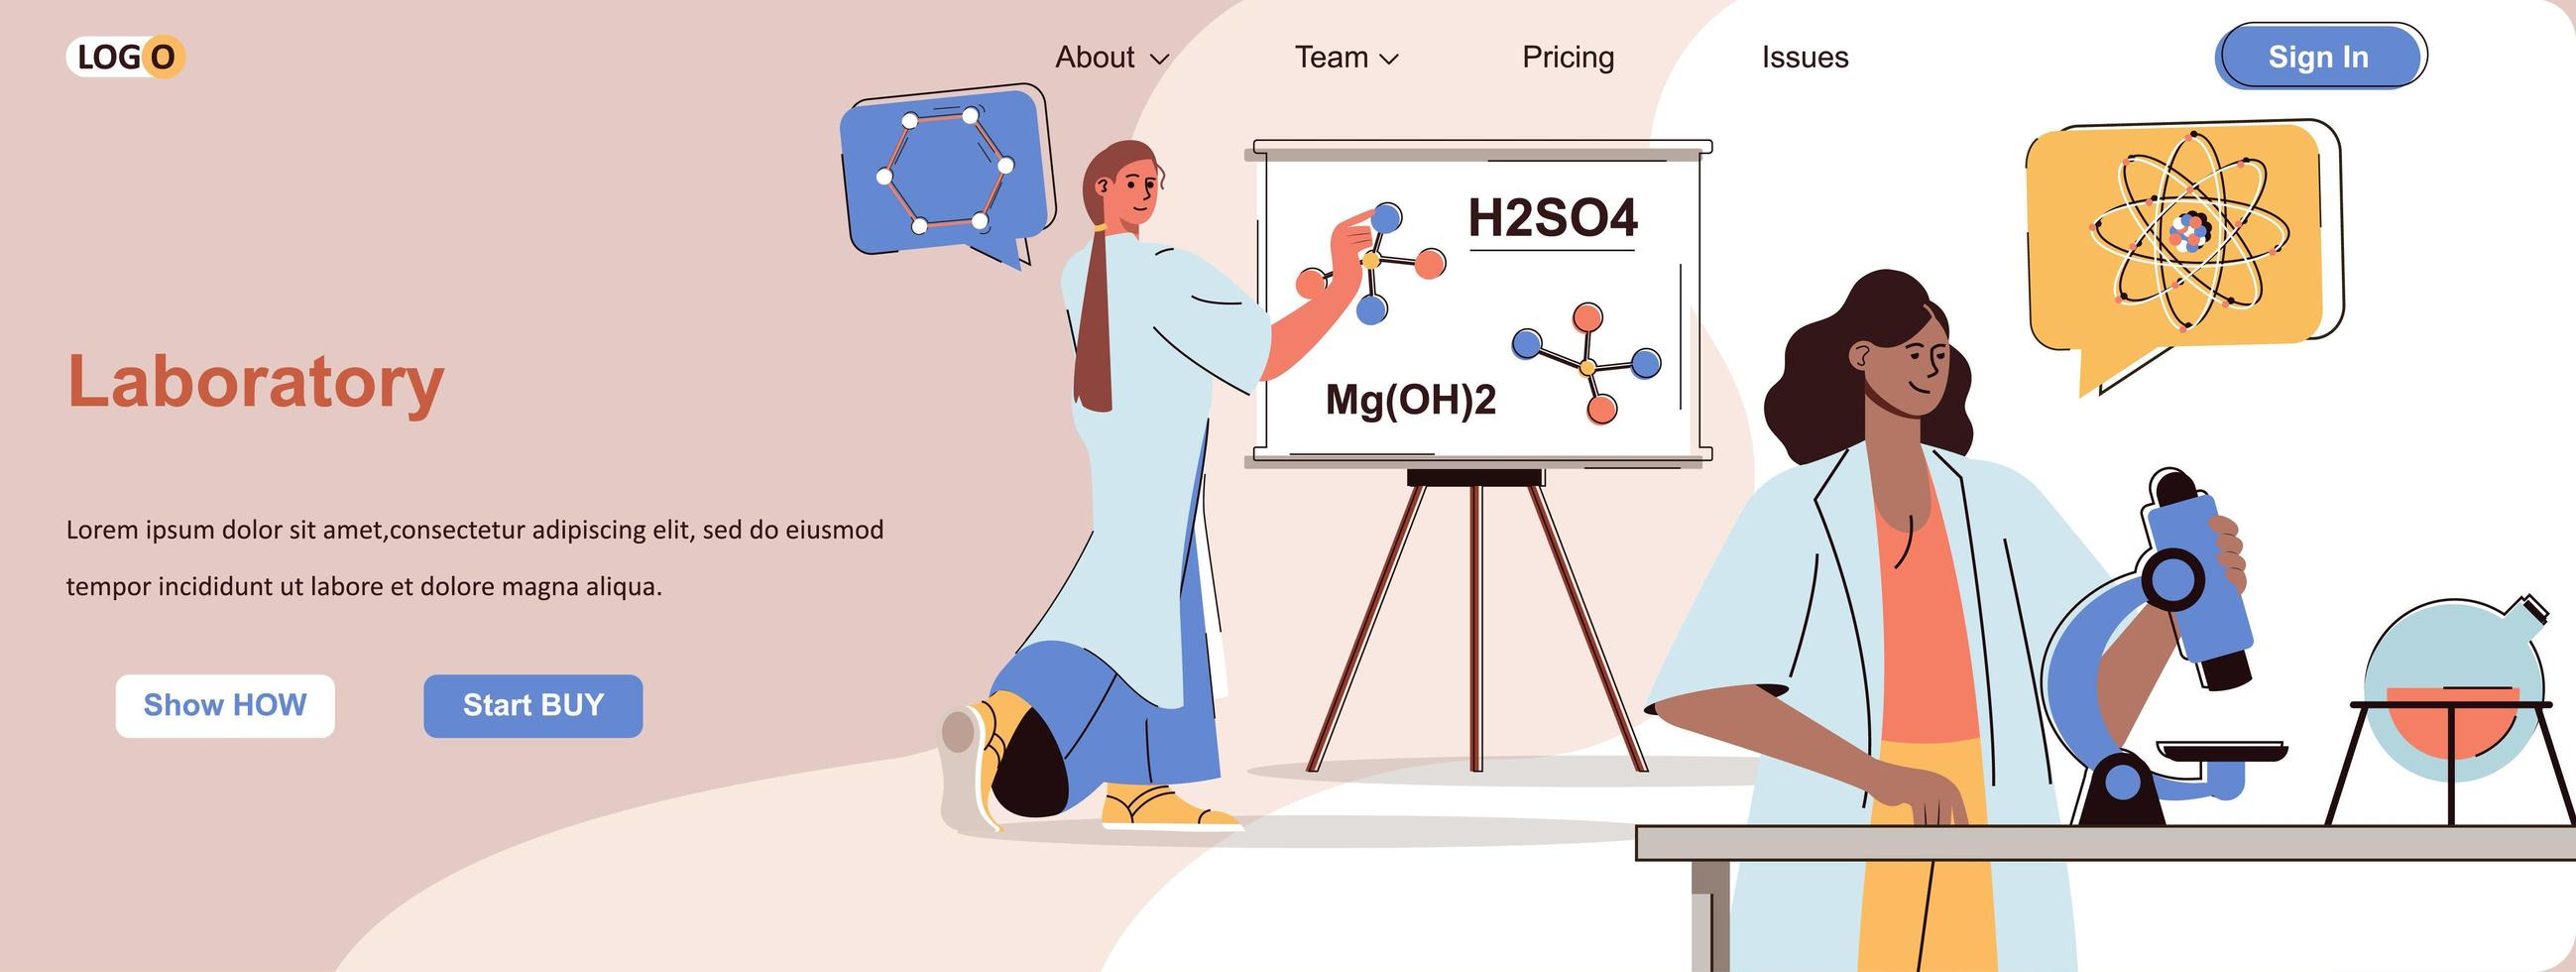 Laboratory web banner for social media promotional materials vector